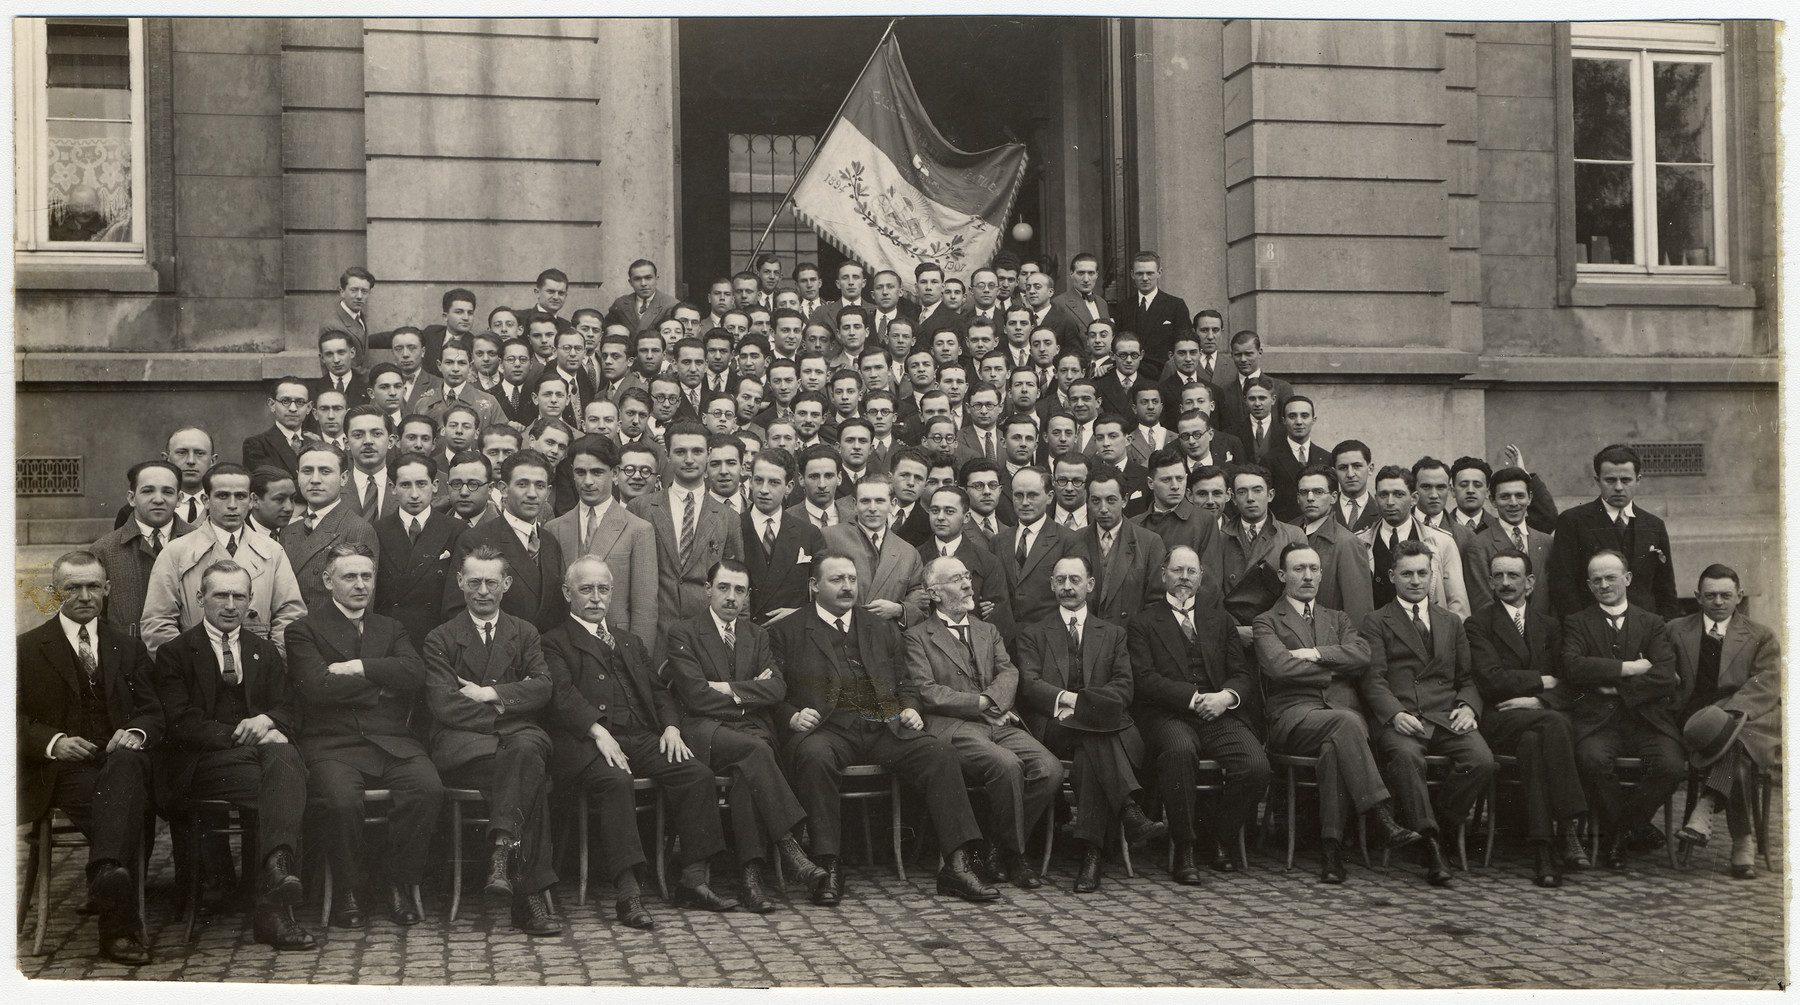 Grou portrait of faculty and students at the technical university in Verviers, Belgium.  Samuel Glasberg is pictured in the back row, fourth from the right.